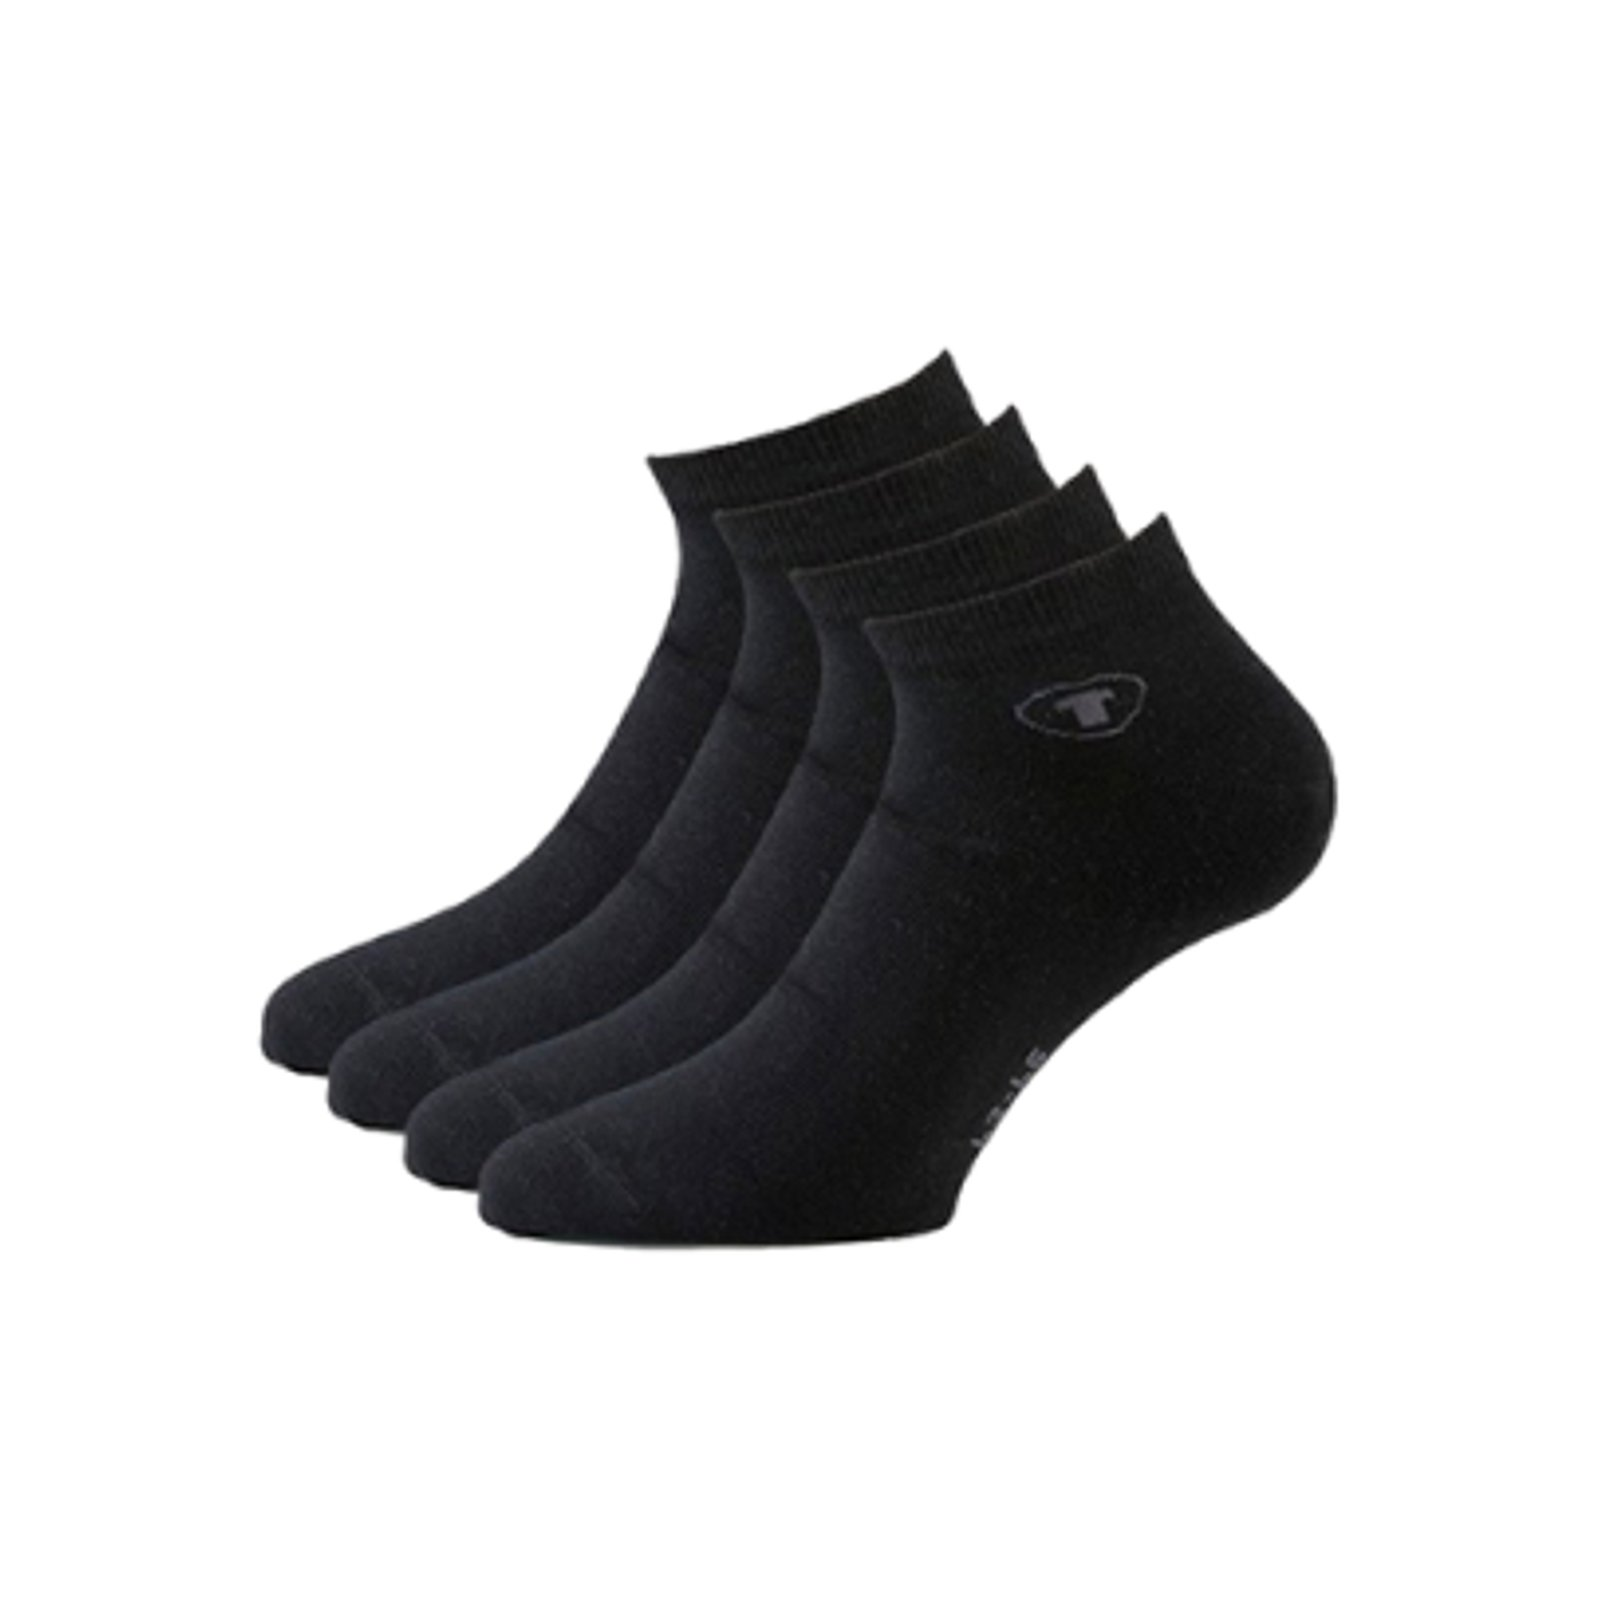 Tom Tailor Sneakersocken im 4er Pack black 43-46